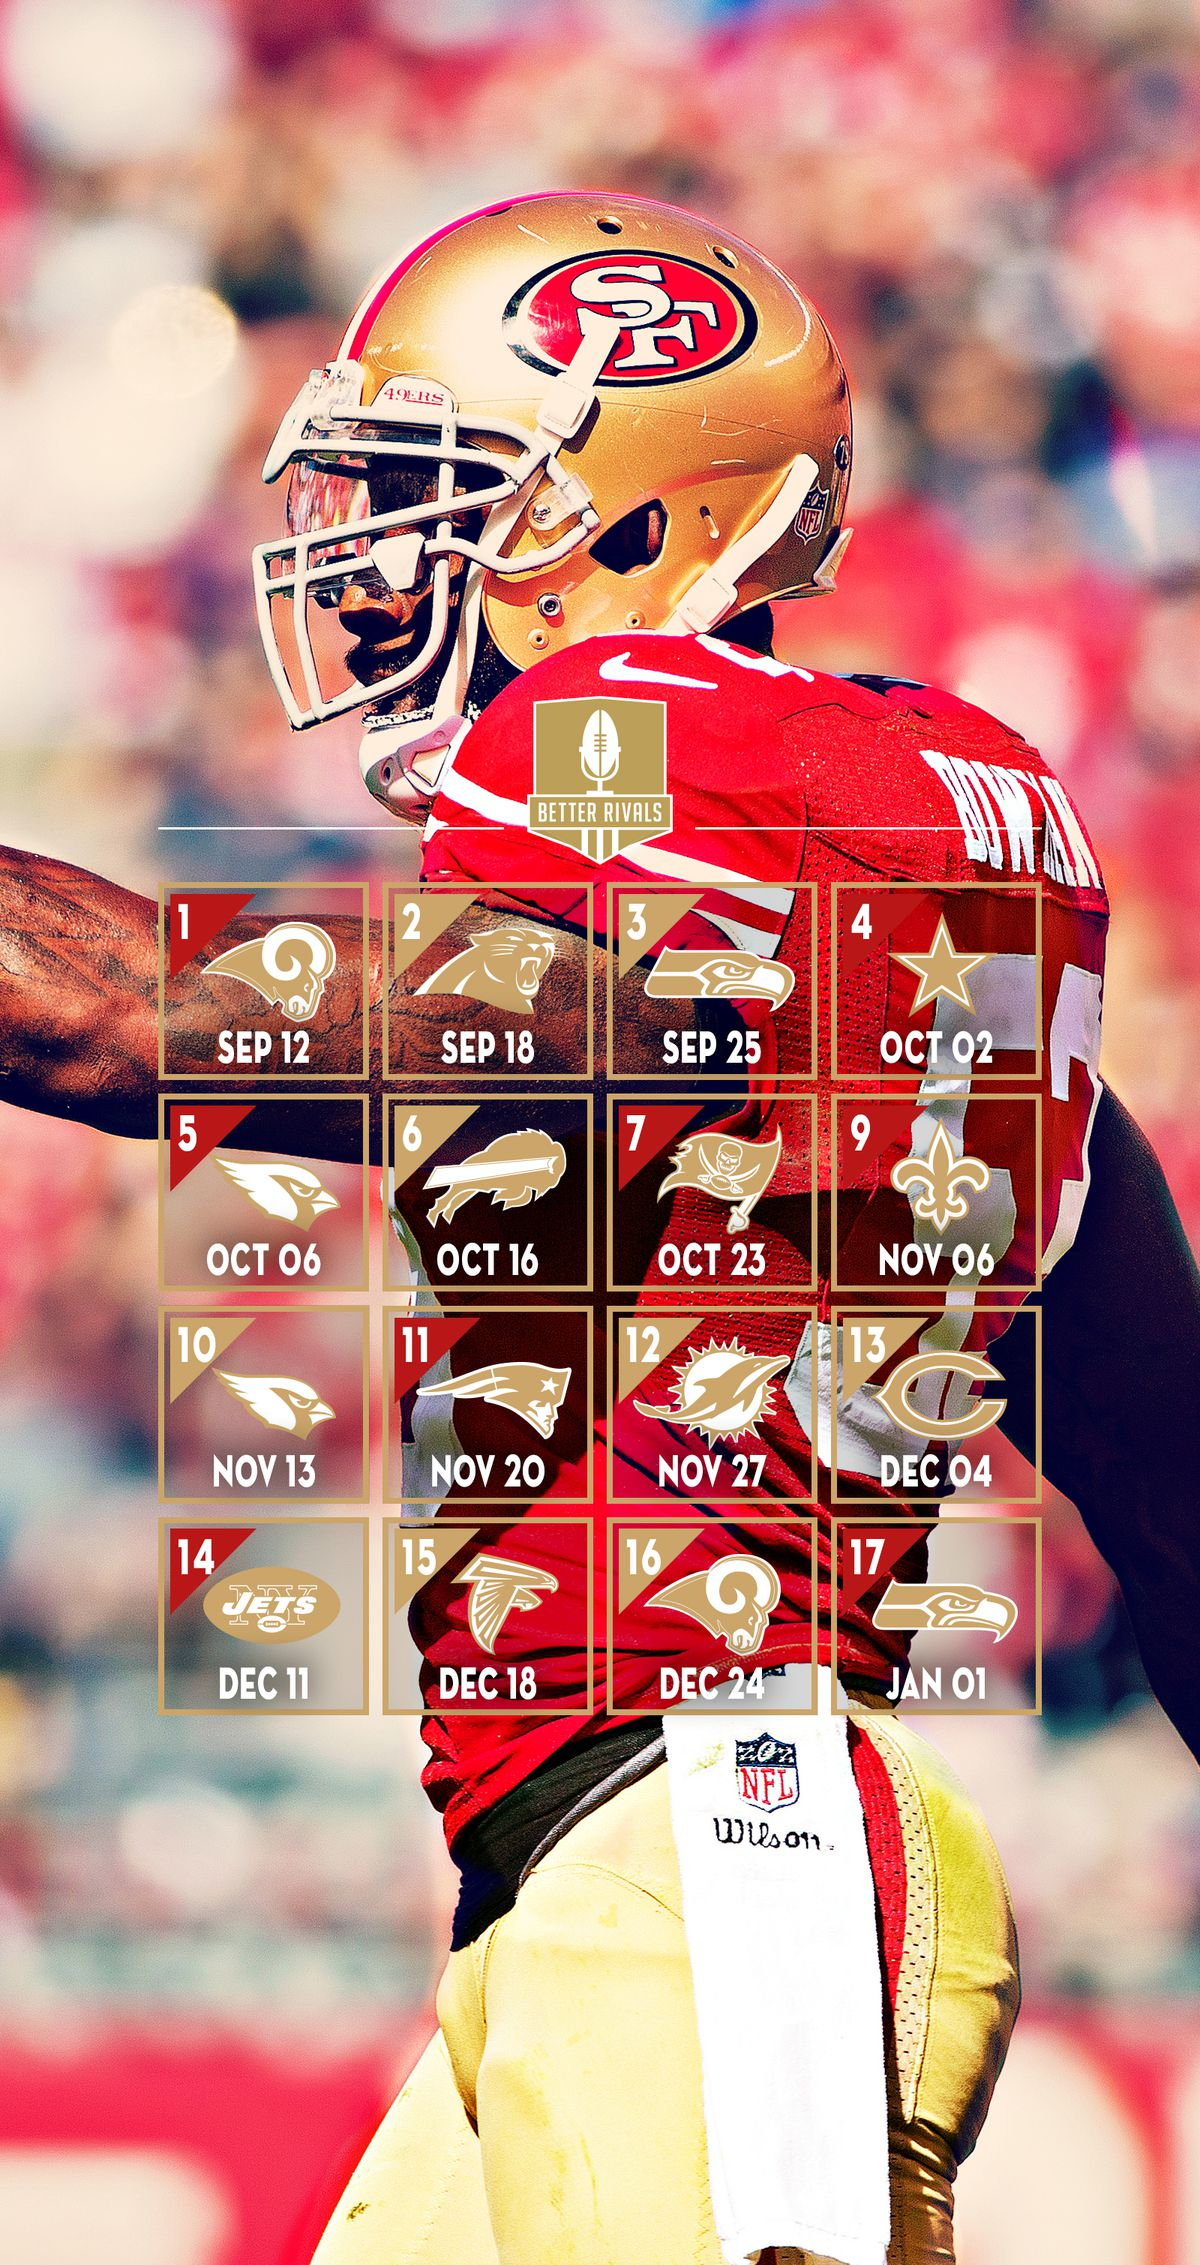 New 49ers wallpapers for desktop and mobile niners nation joce bossin voltagebd Choice Image